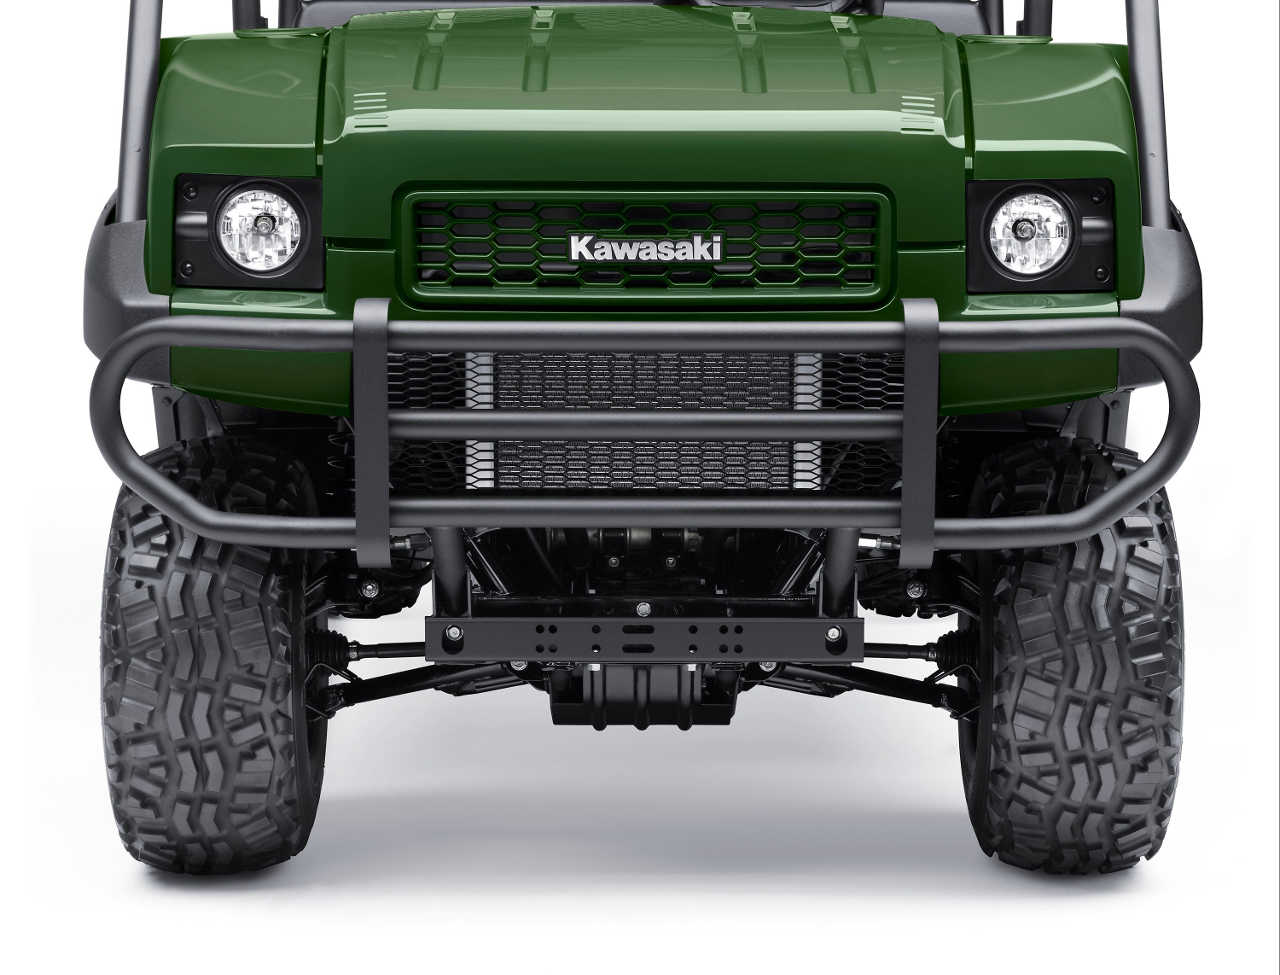 Kawasaki Mule Front Bumper : Kawsaki mule and model range atv